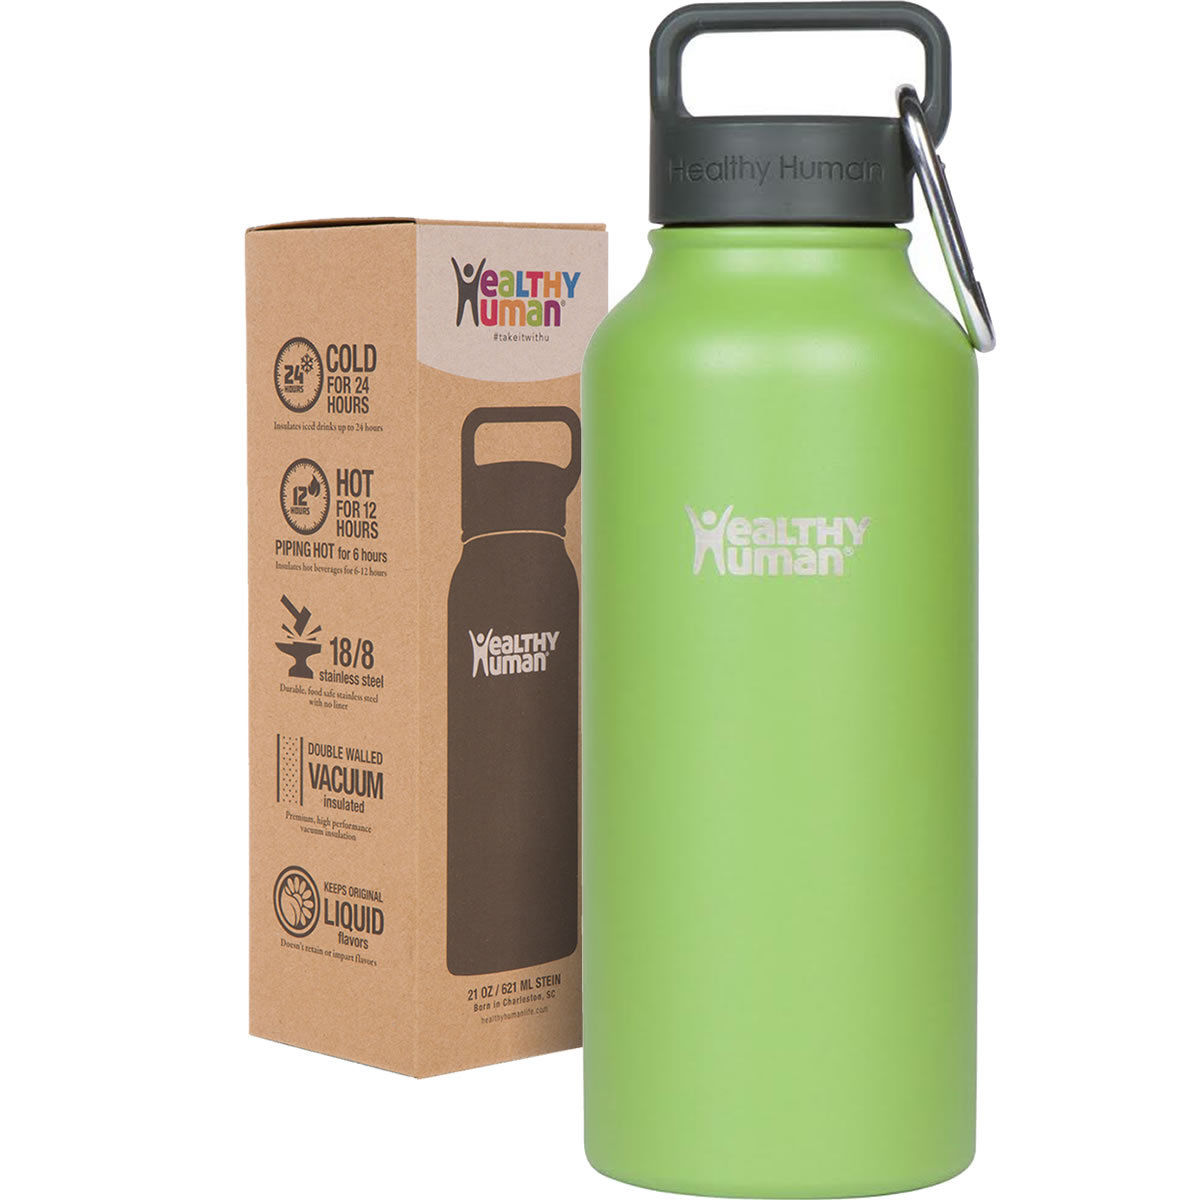 Healthy Human Water Bottle - Code ANAFIT10 for 10%